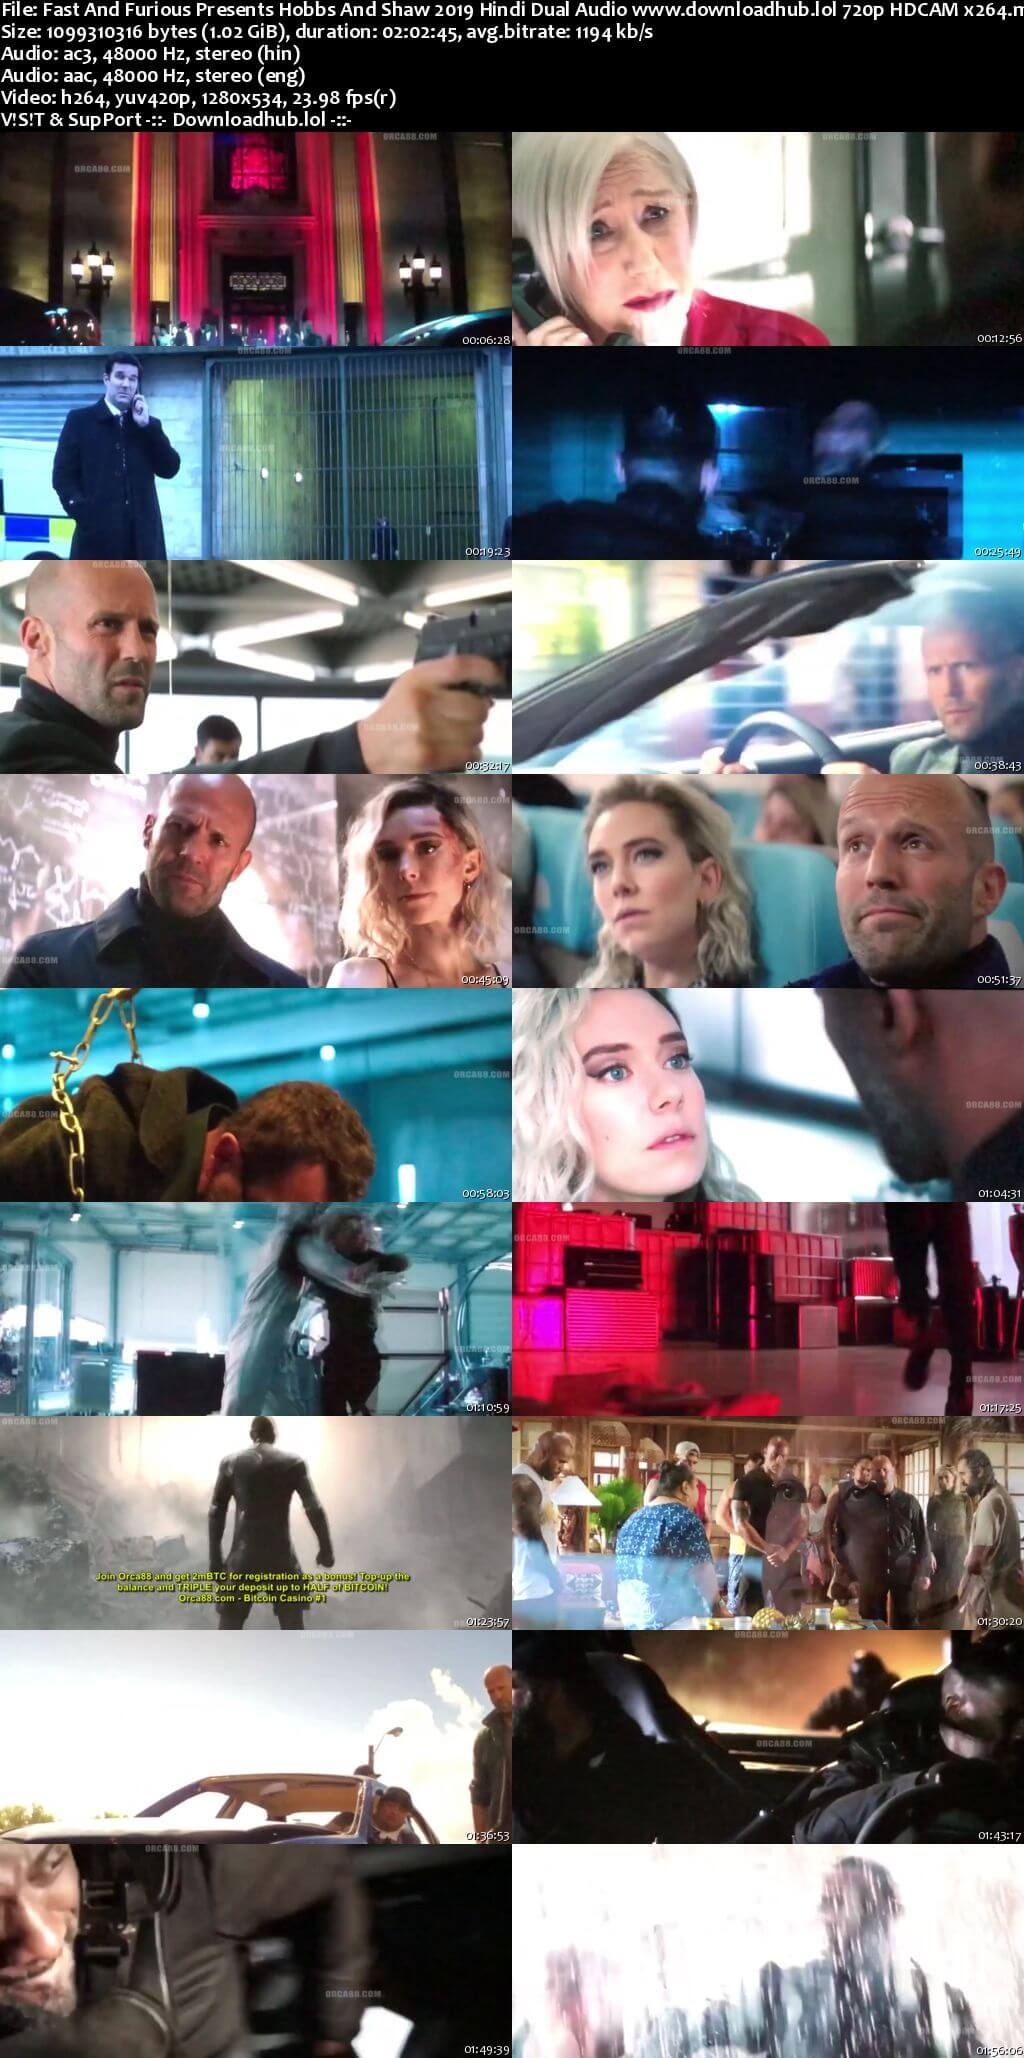 Fast And Furious Presents Hobbs And Shaw 2019 Hindi Dual Audio 720p HDCAM x264